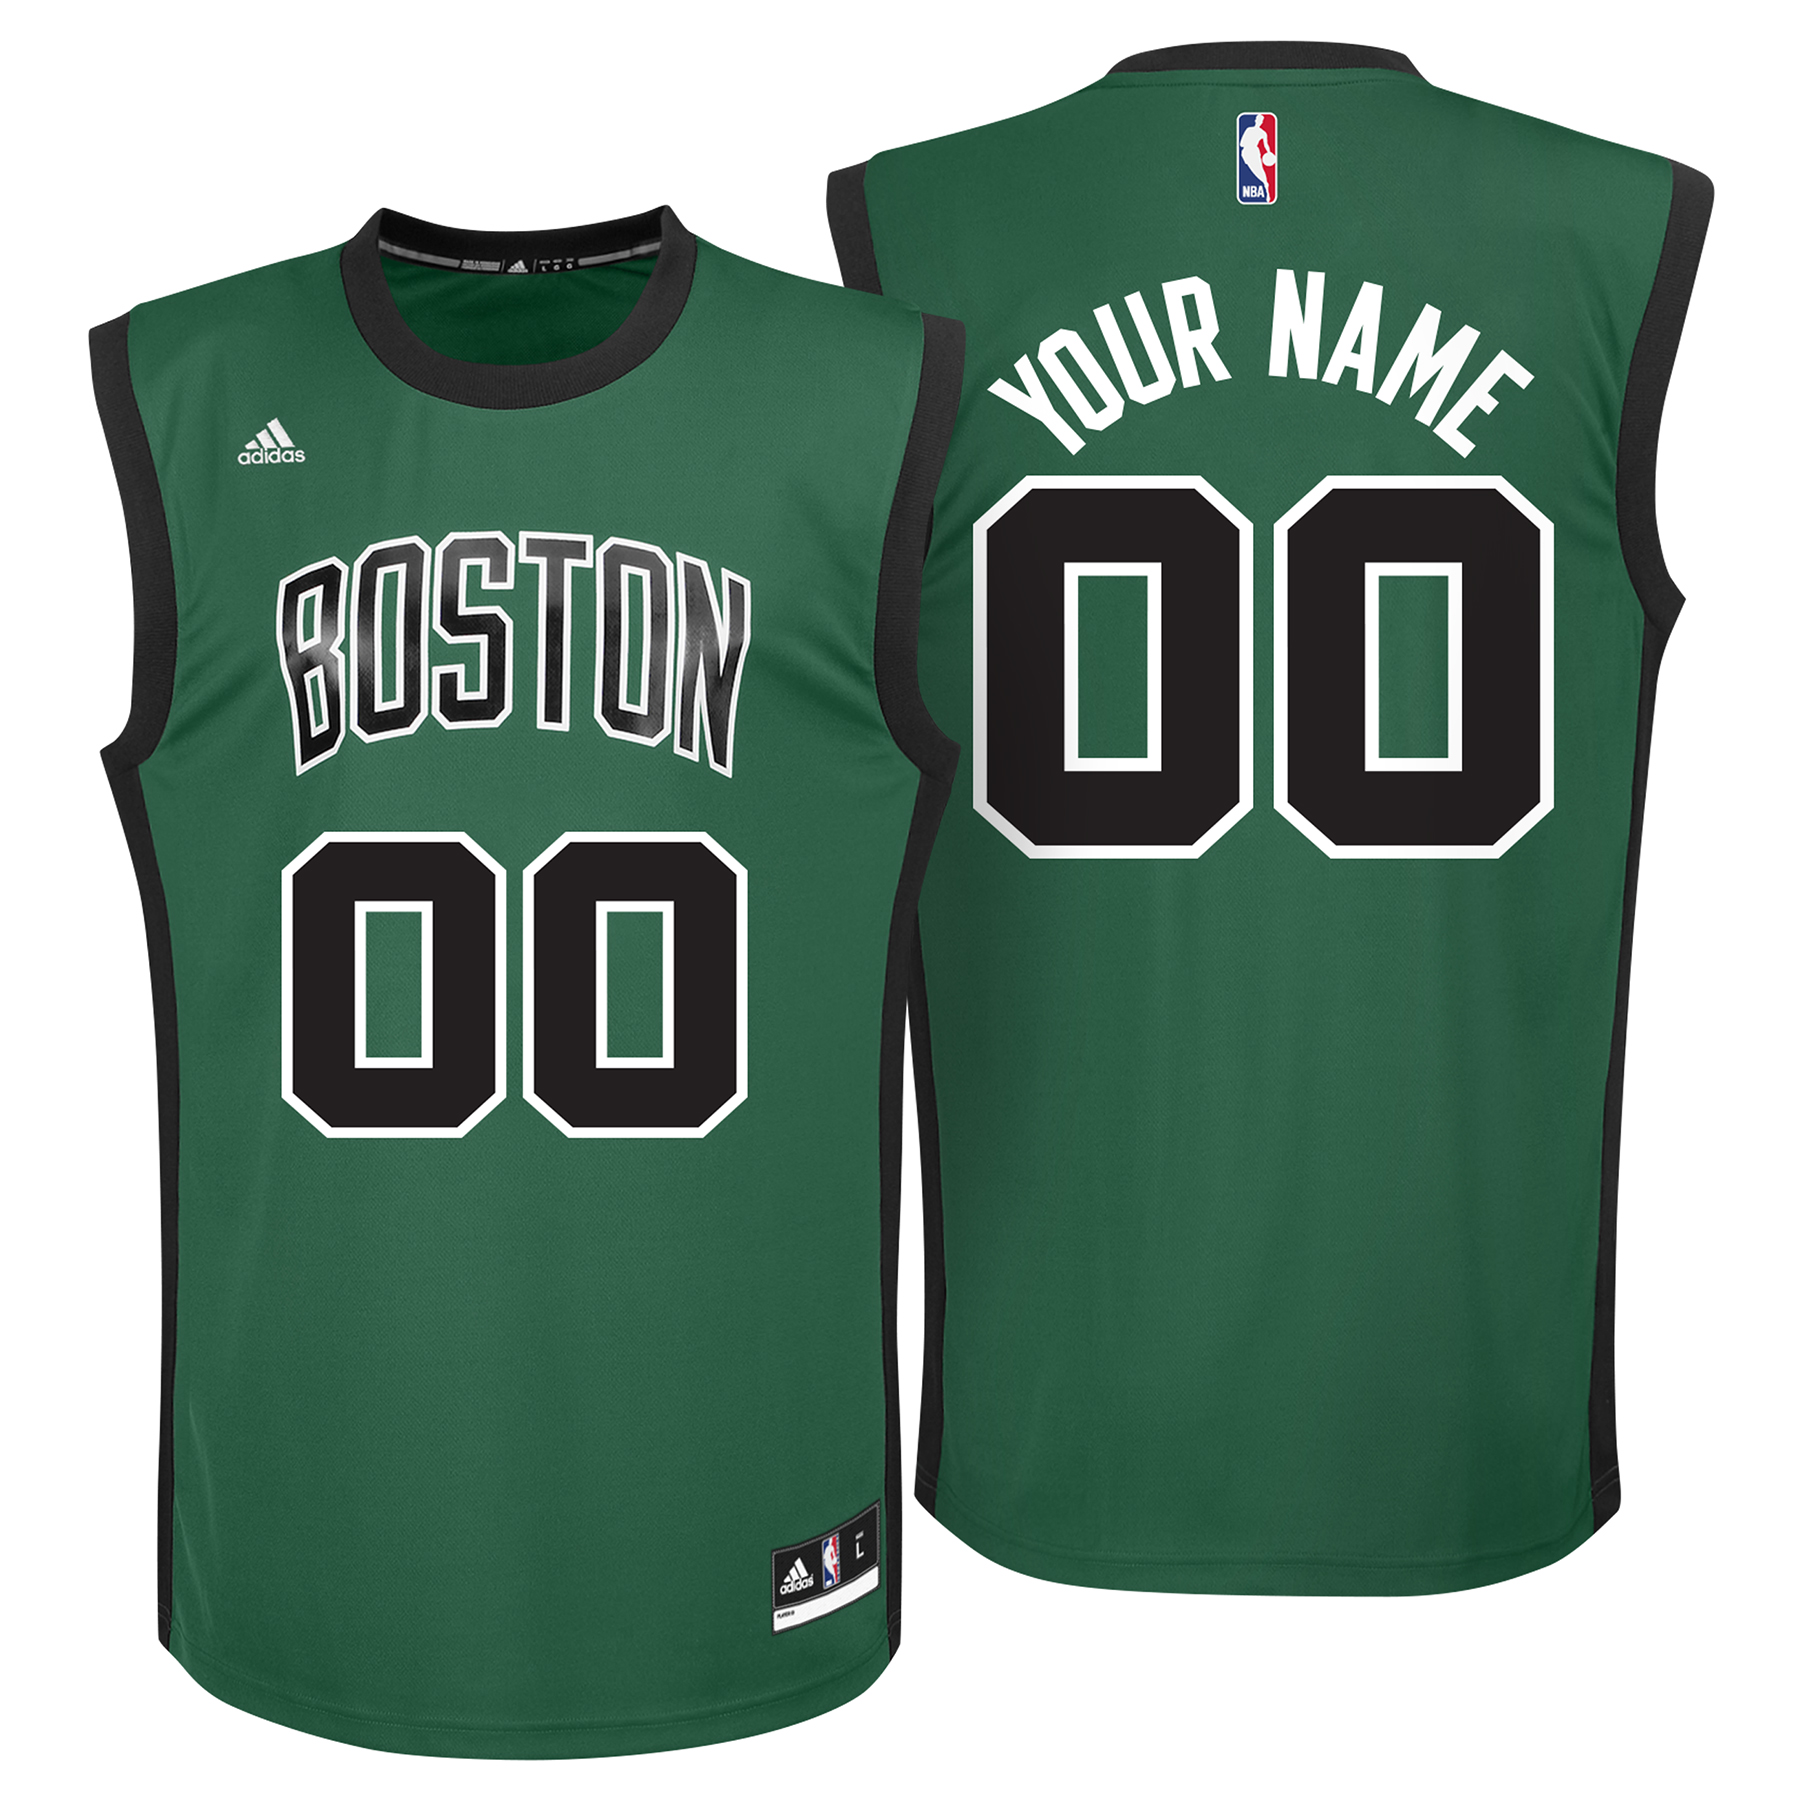 Boston Celtics Alternate Replica Jersey - Custom - Mens